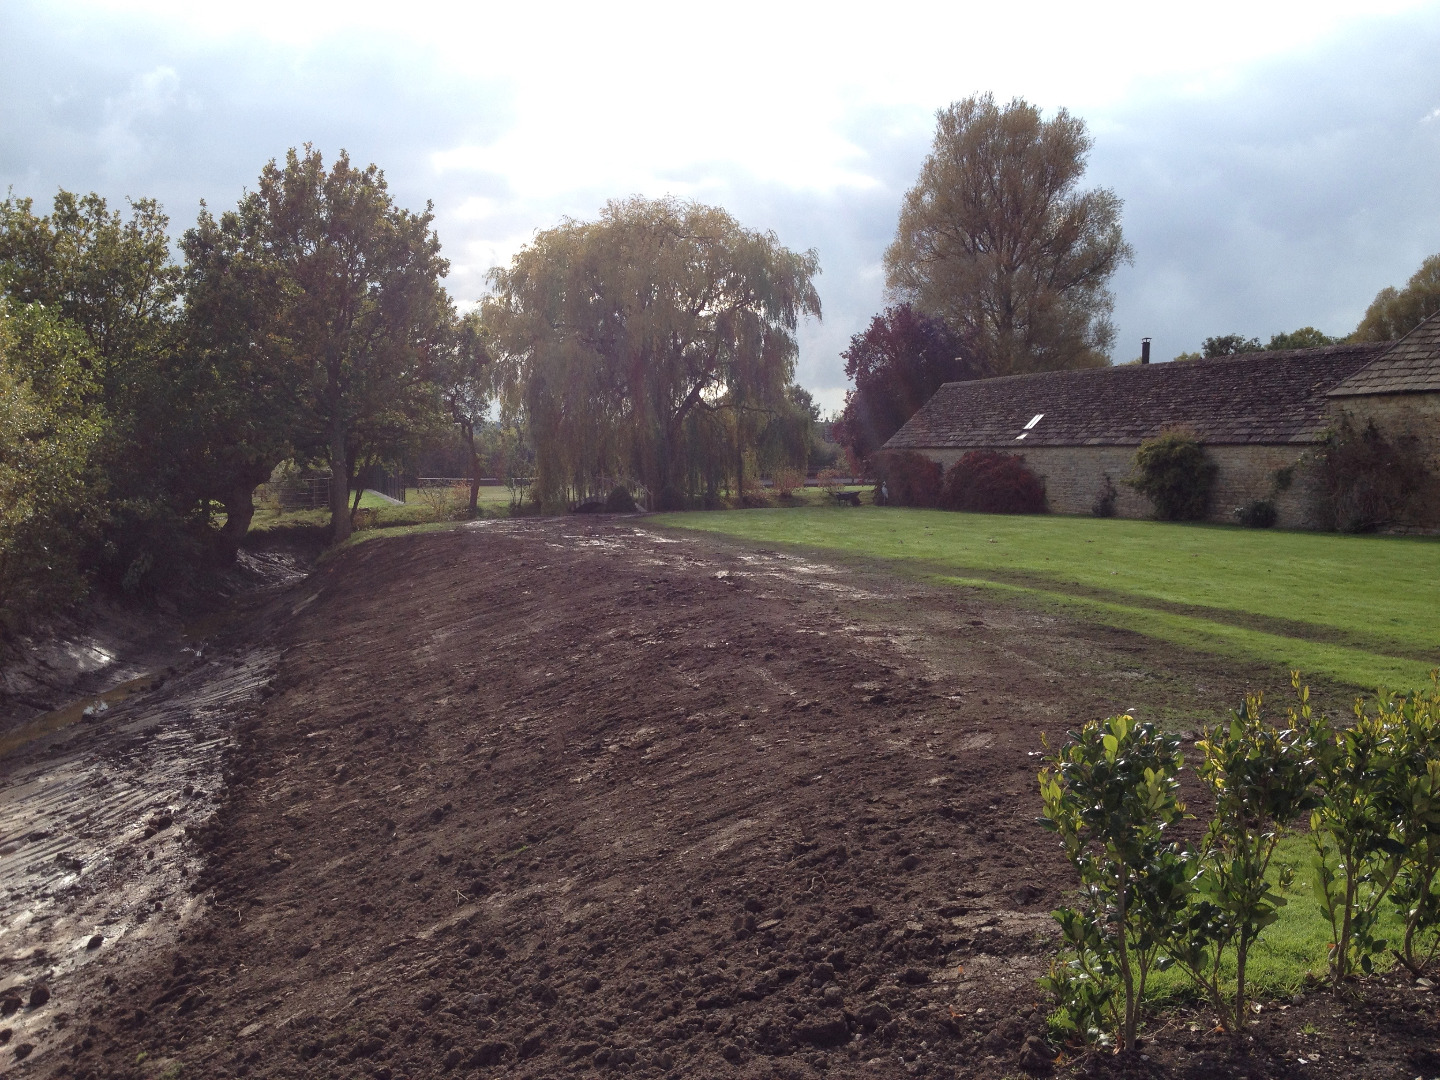 Restoration of Moat project in Wiltshire